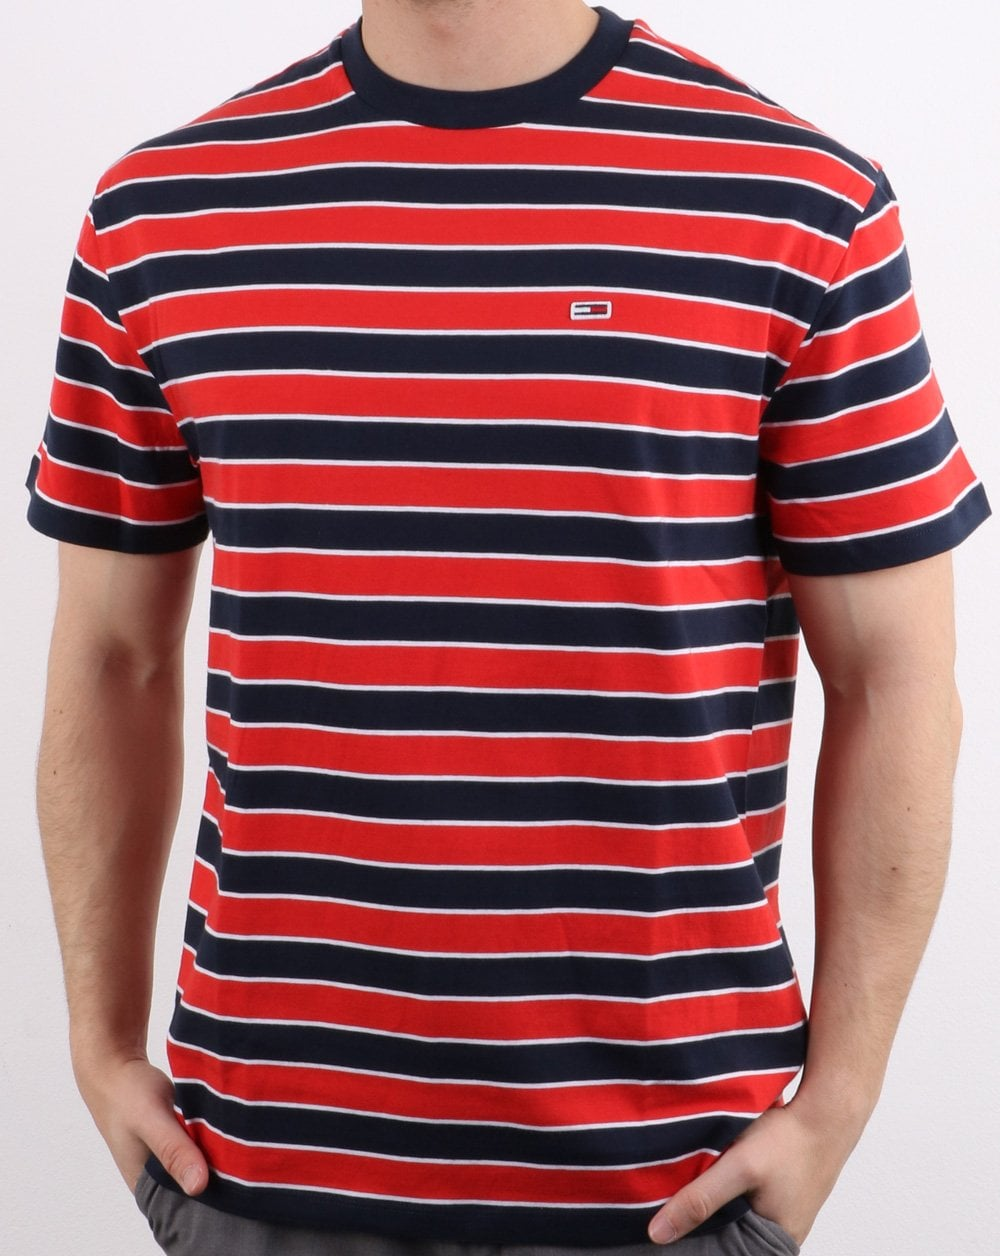 dfd74469 Tommy Hilfiger Striped T Shirt in Red and Navy   80s Casual Classics